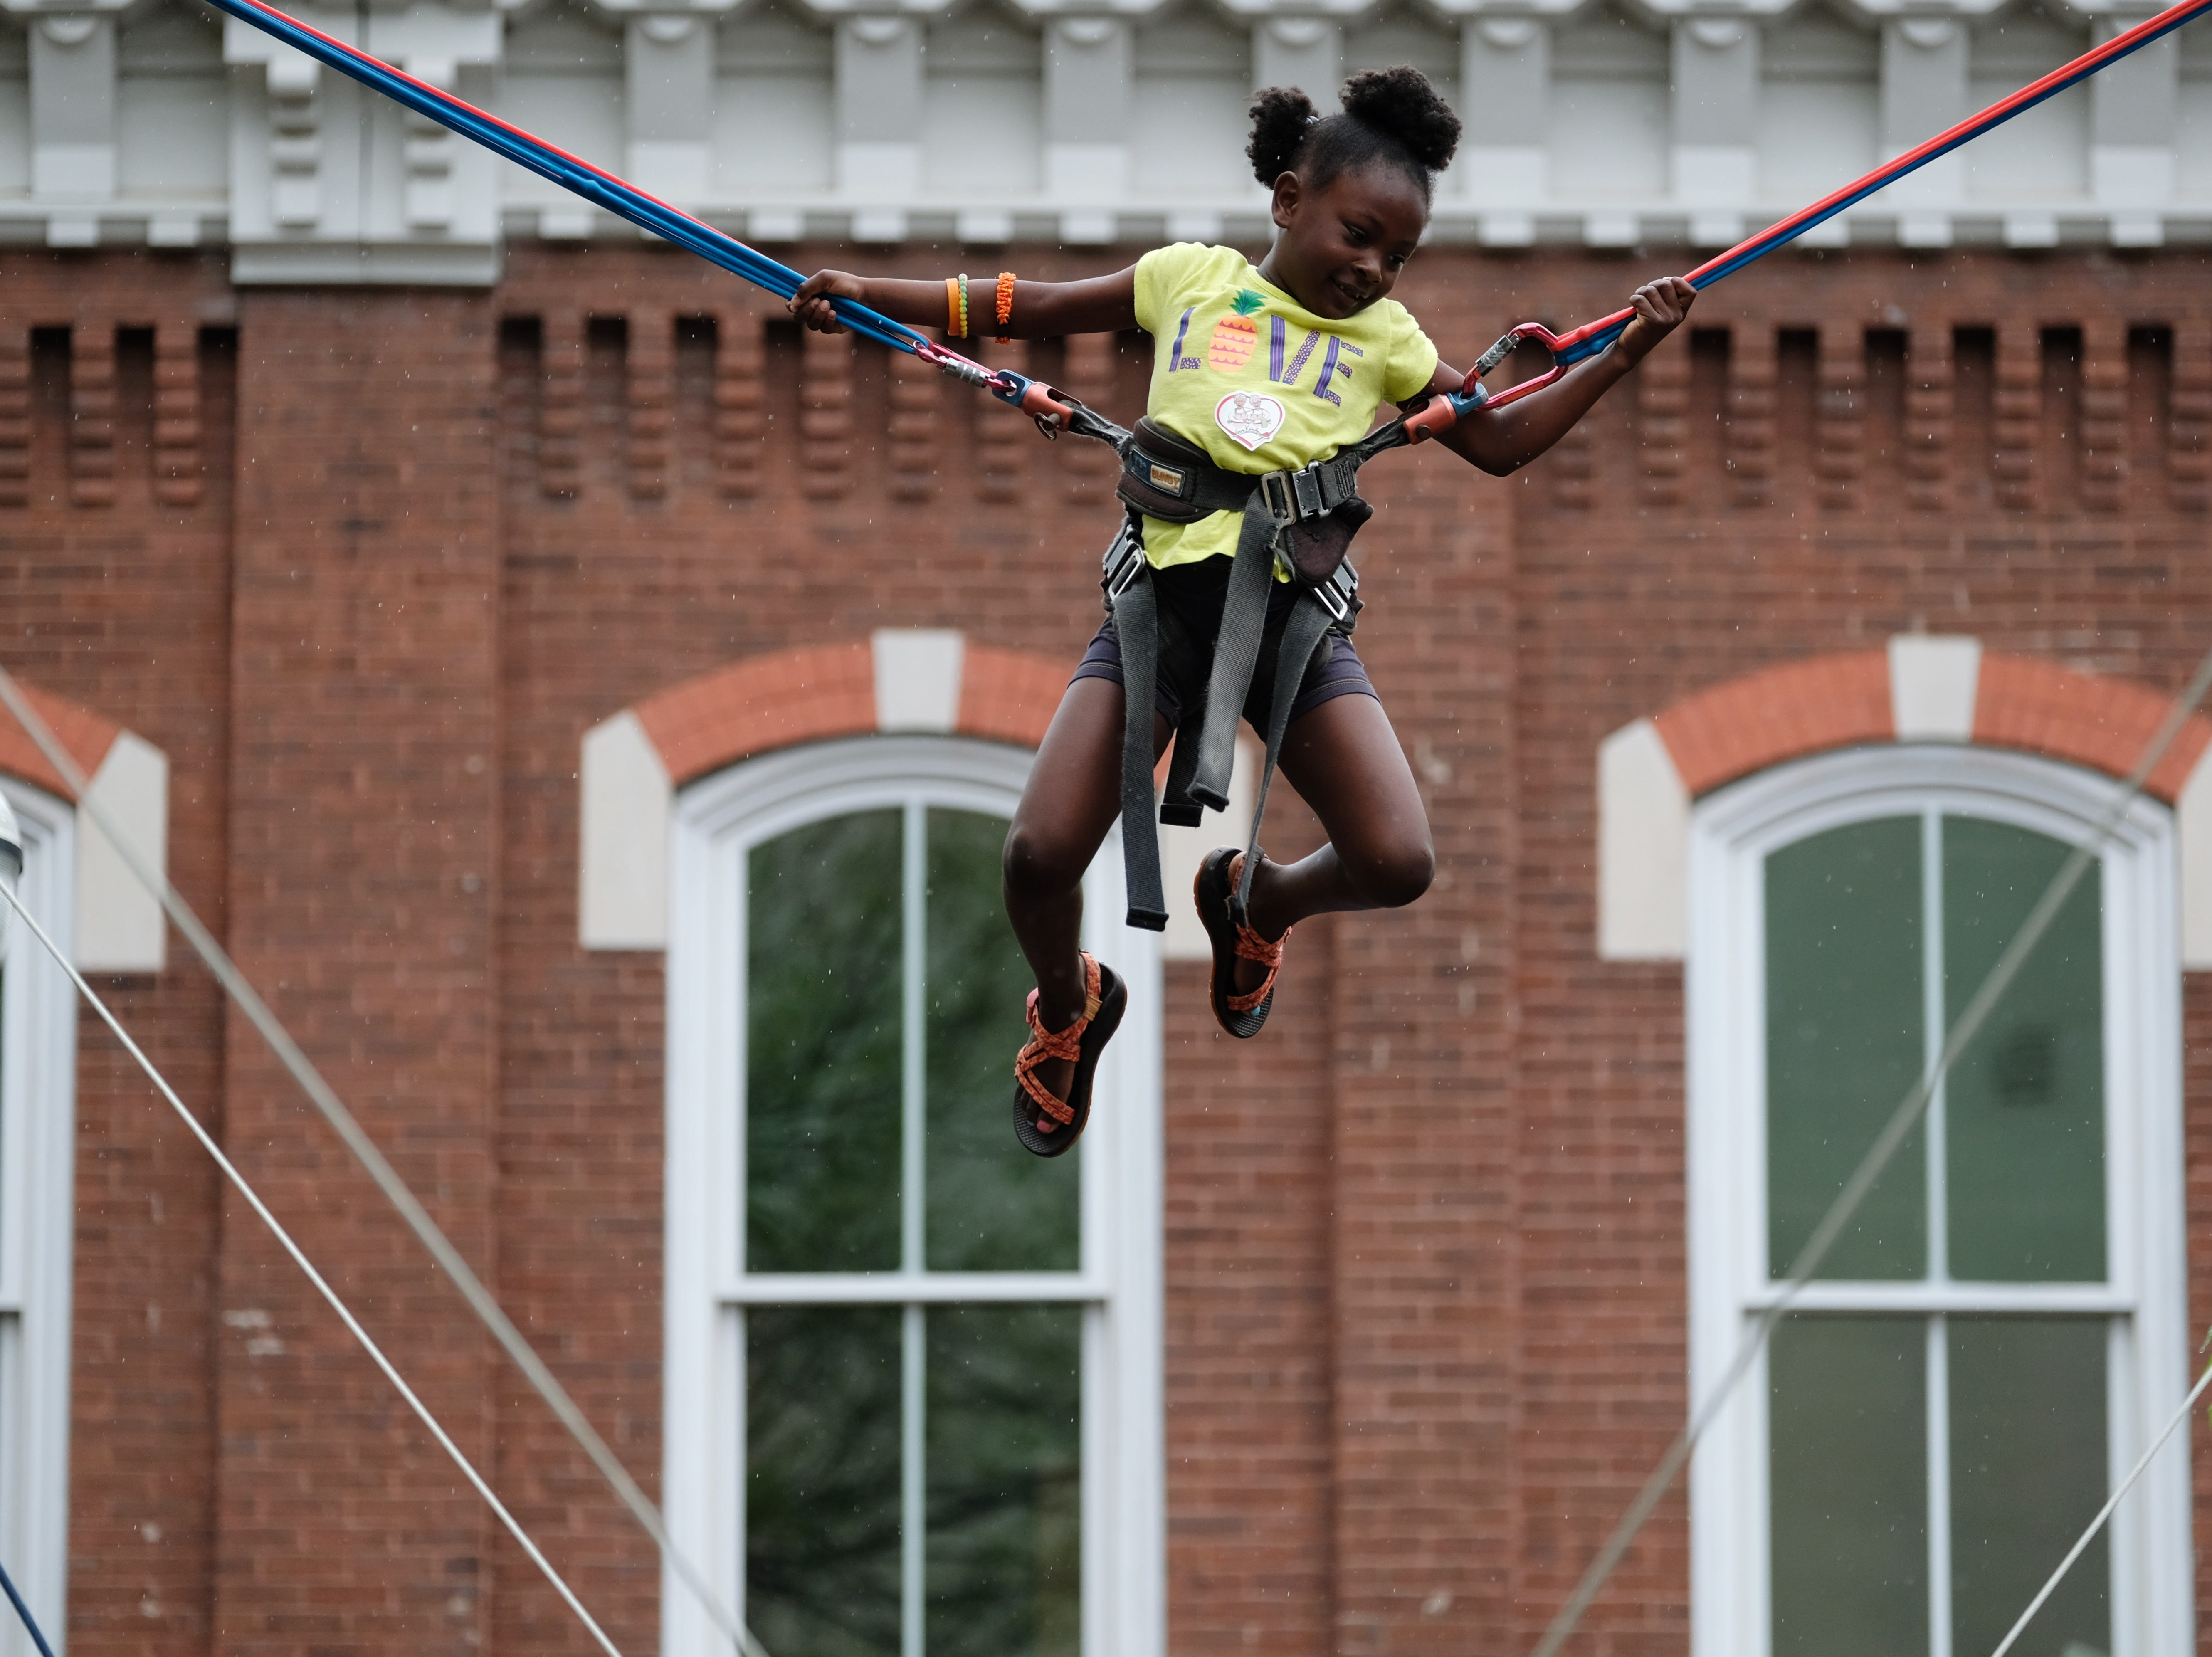 Ra'Ziya Grate, 6, jumps on a trampoline during the Rossini Festival in Knoxville on Saturday, April 13, 2019. (Shawn Millsaps/Special to News Sentinel)